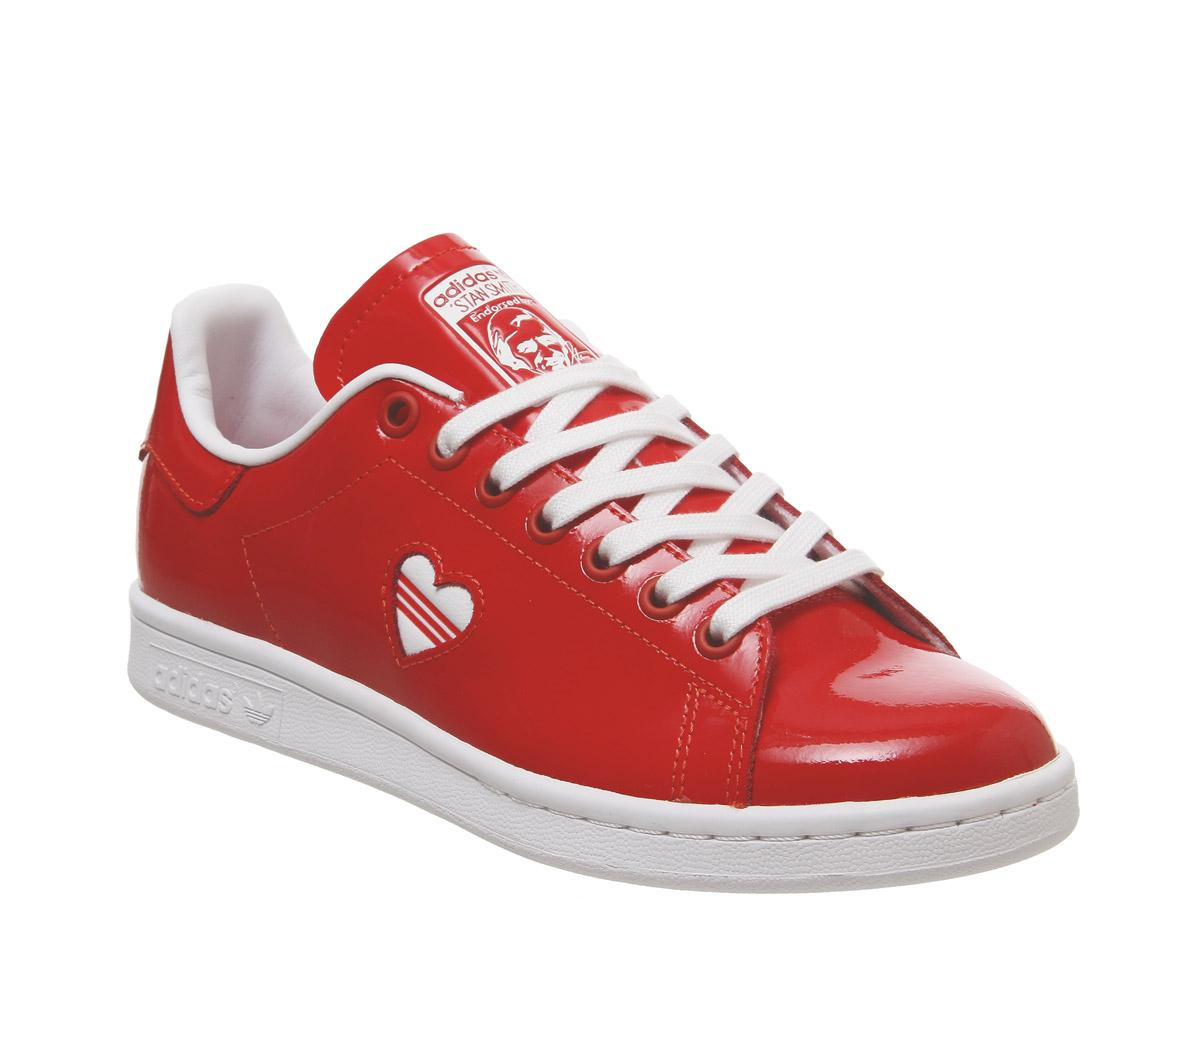 adidas stan smith trainers white red heart